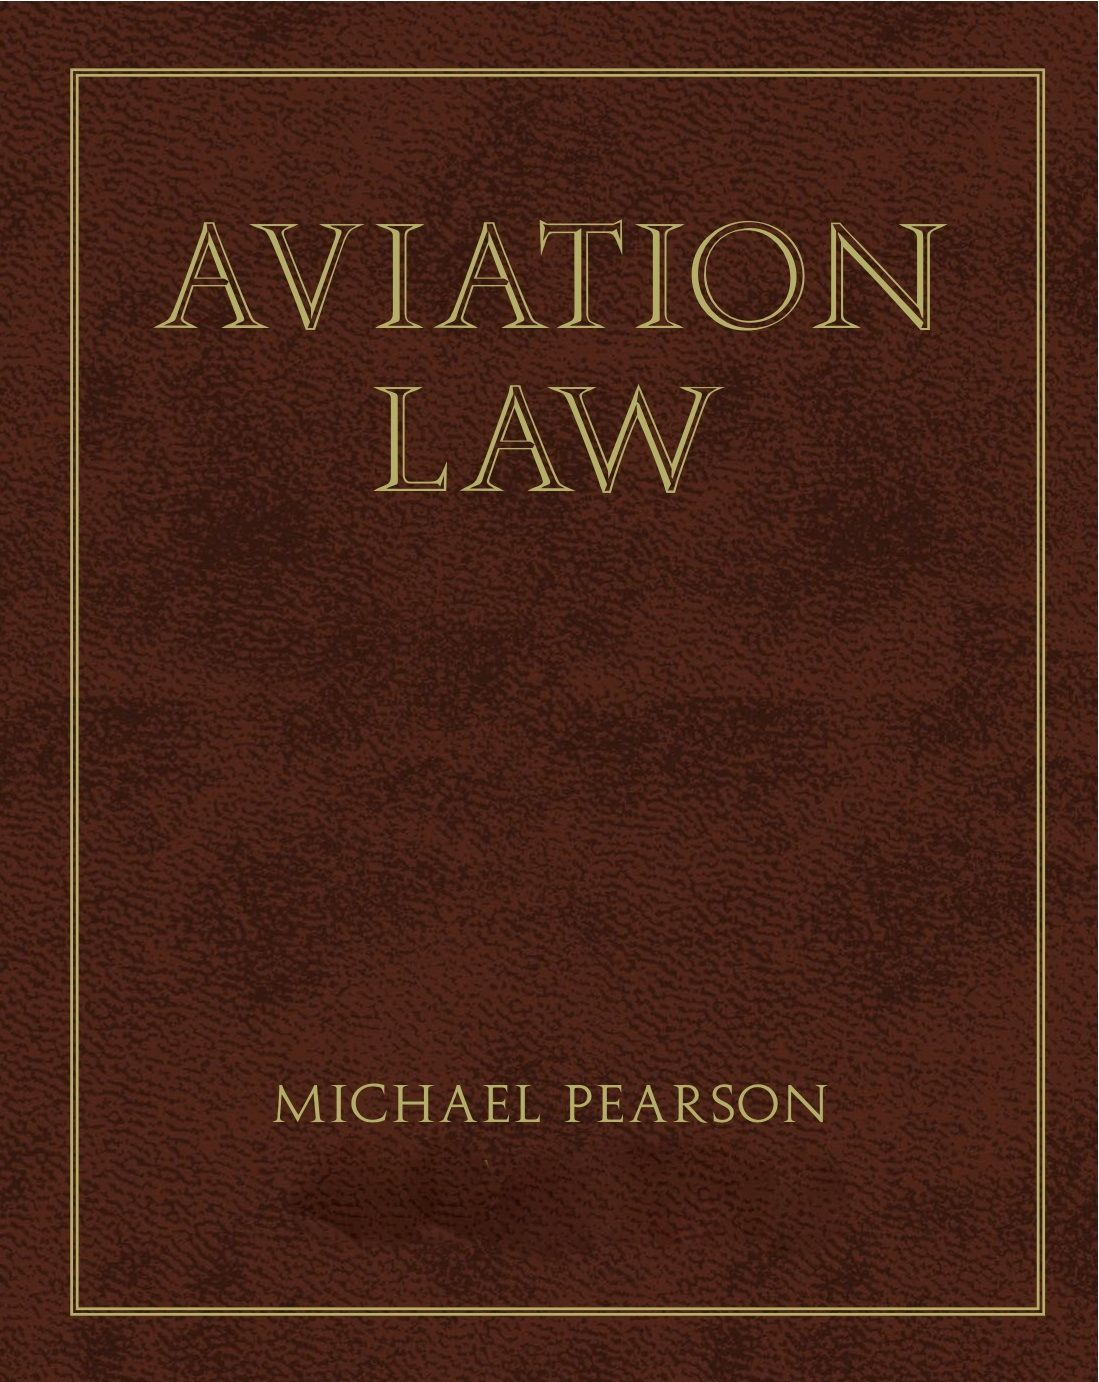 Aviation Law text